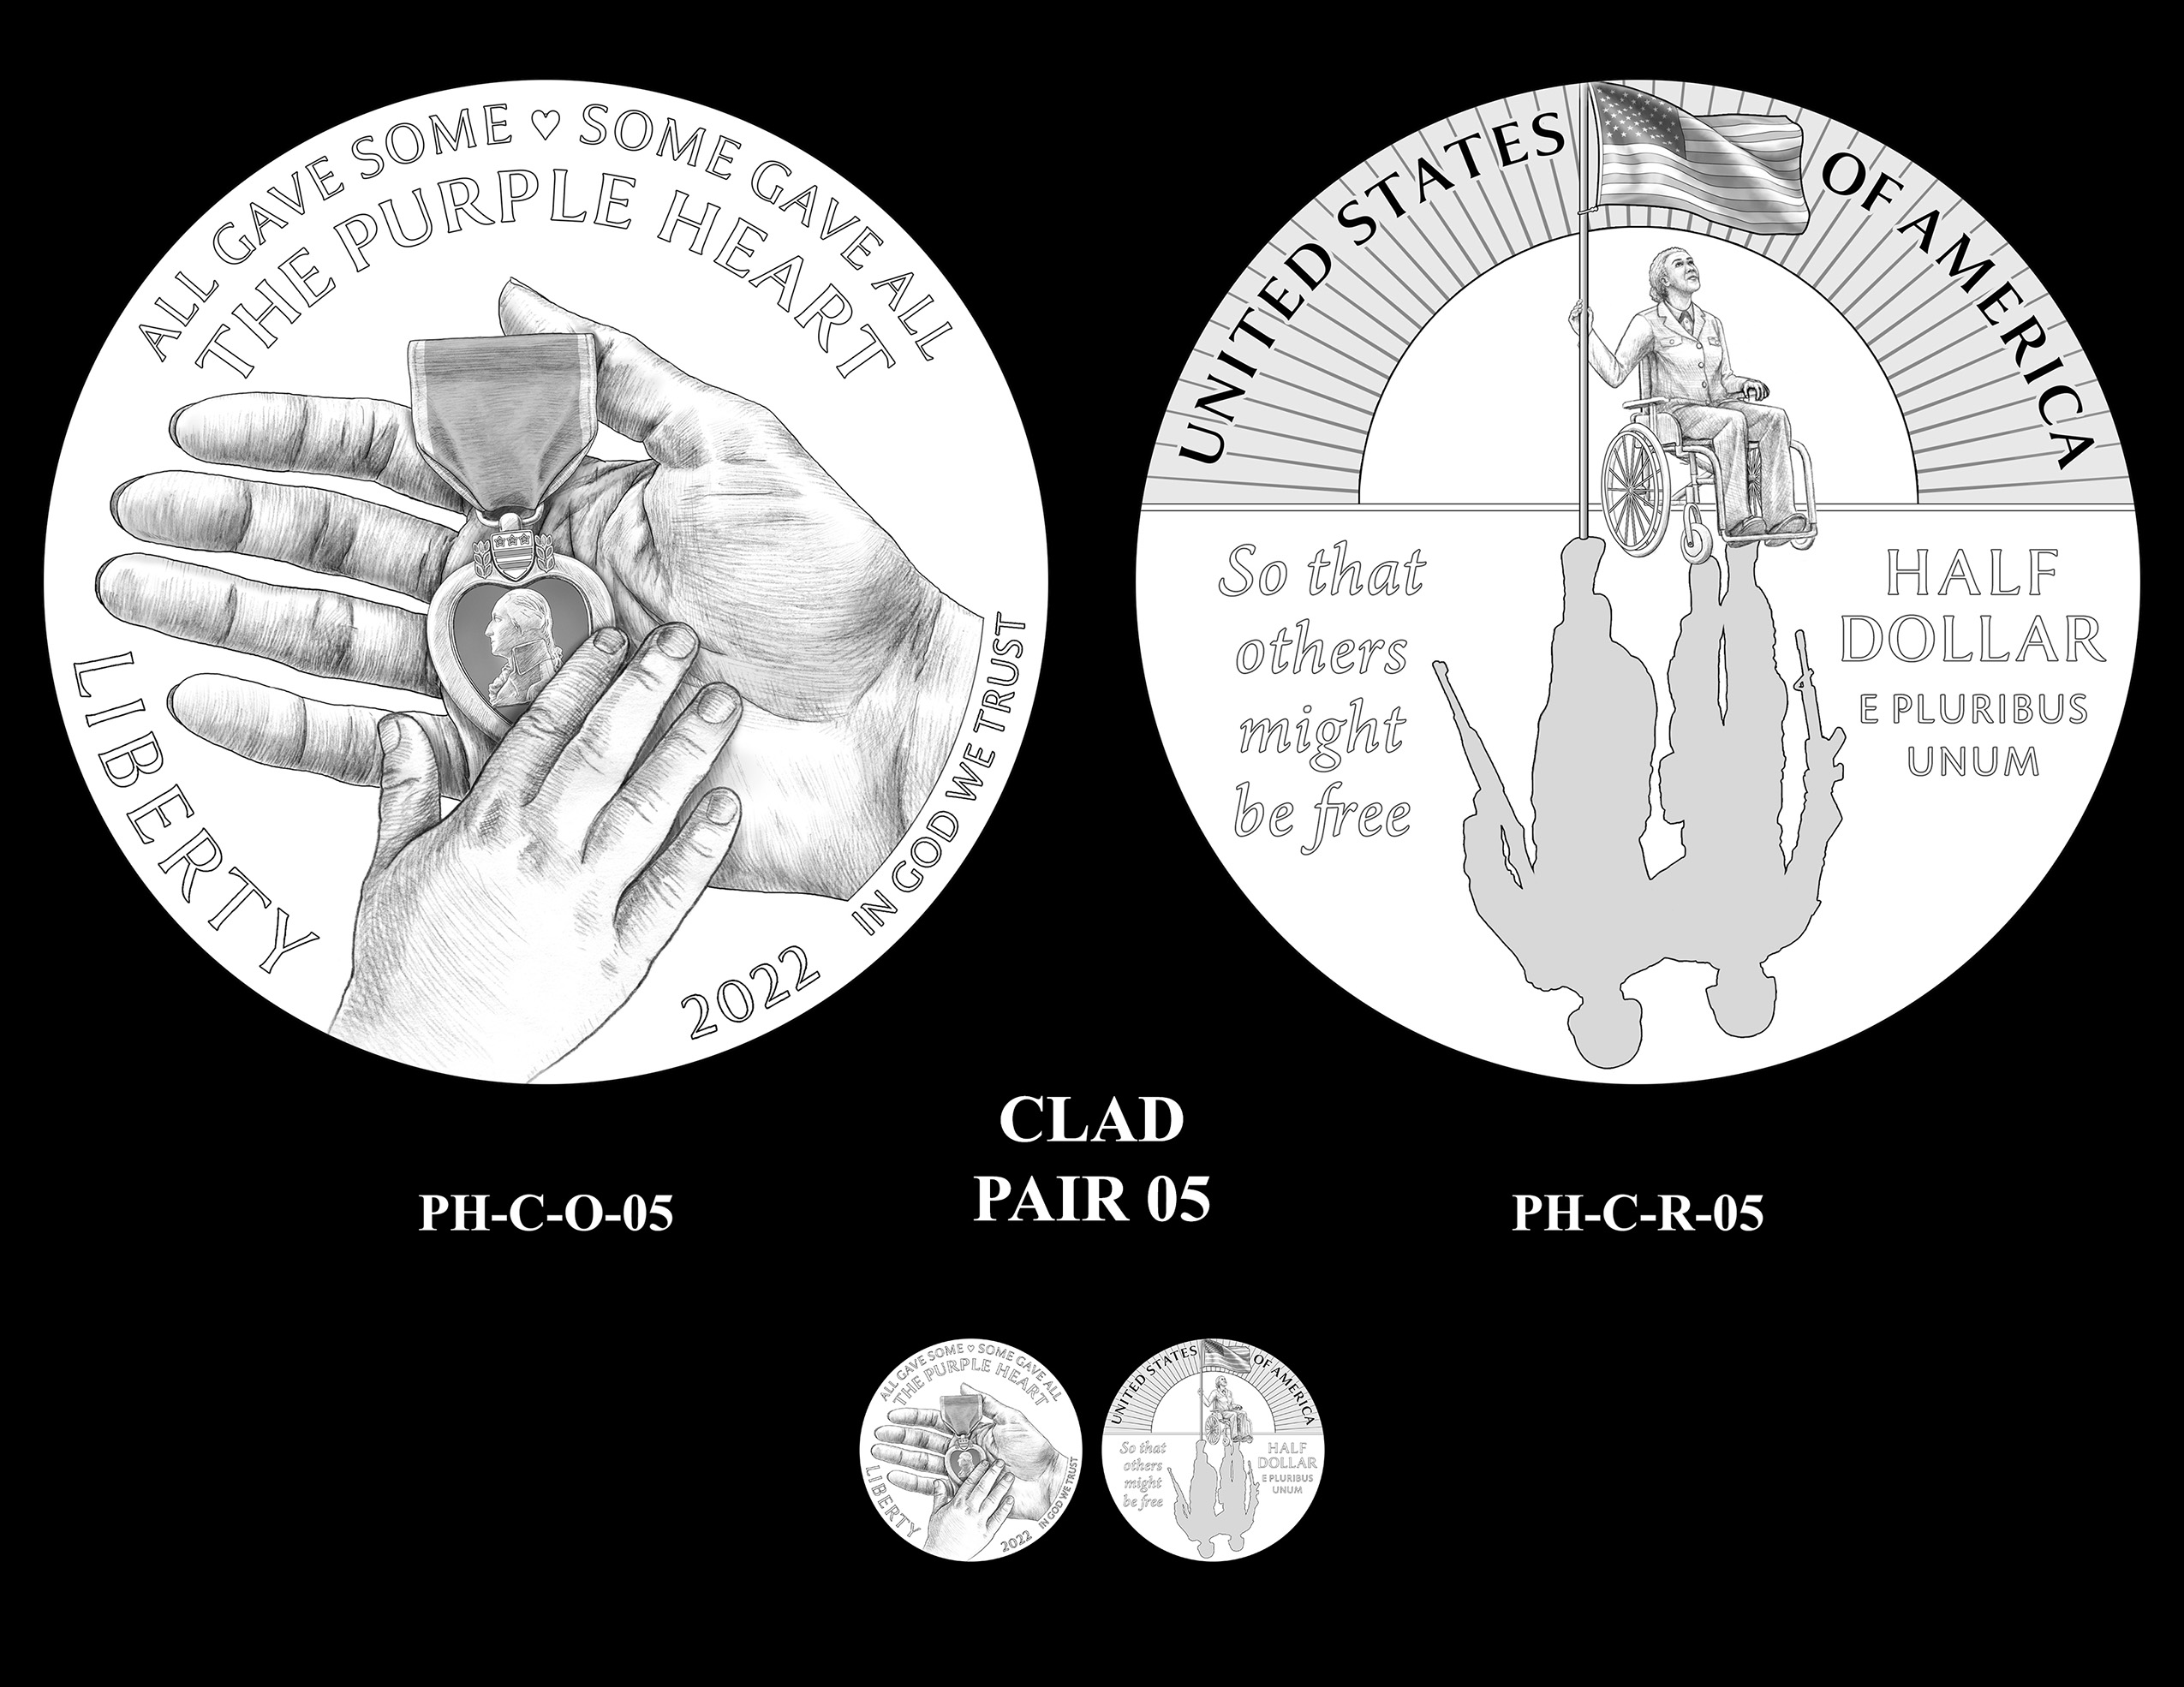 Clad Pair 05 -- National Purple Heart Hall of Honor Commemorative Coin Program